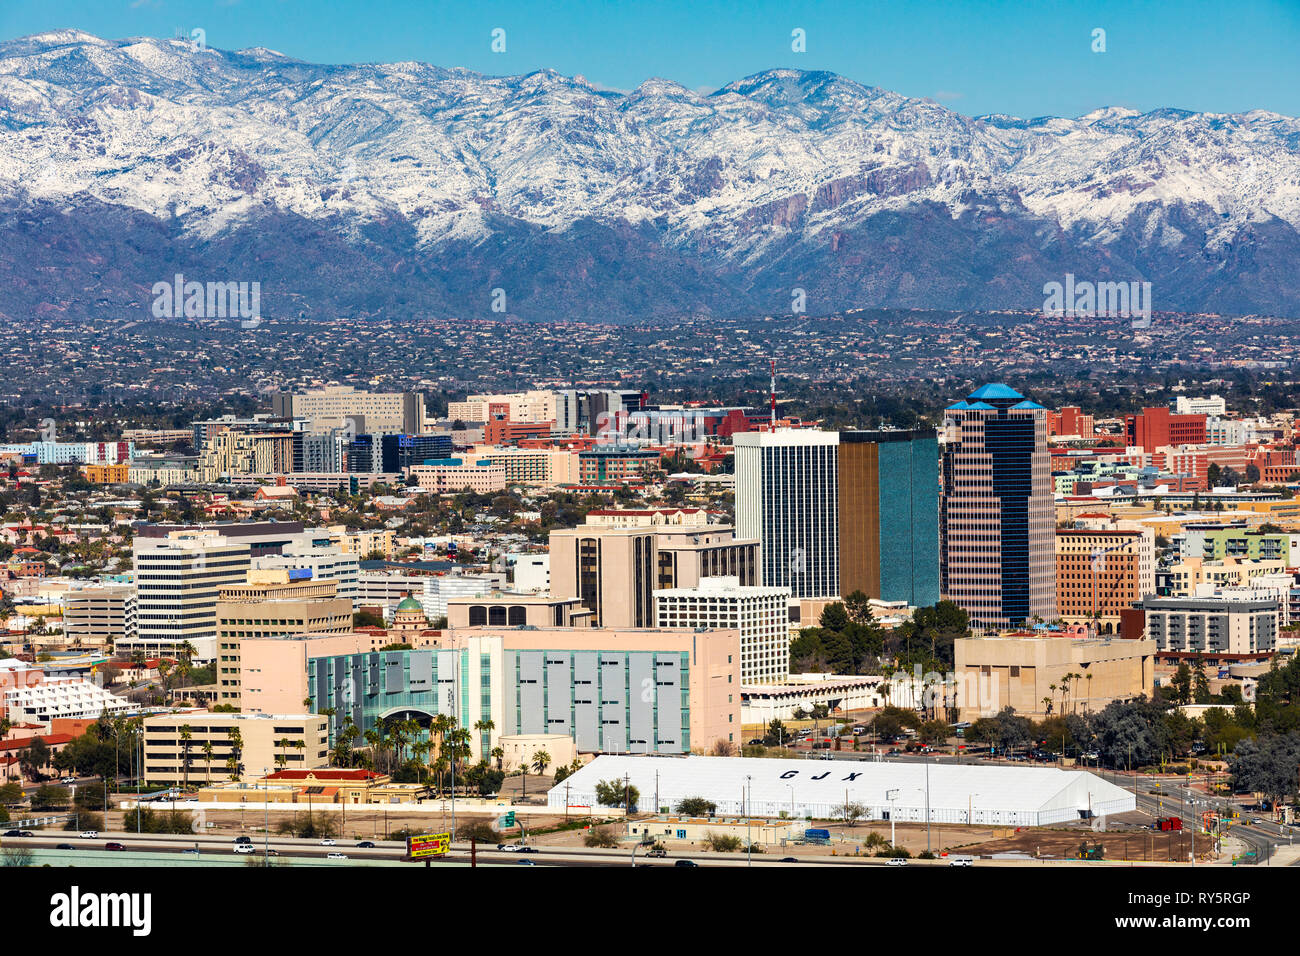 view of downtown Tucson, Arizona in winter, snow on the Santa Catalina Mountians in the distance. - Stock Image